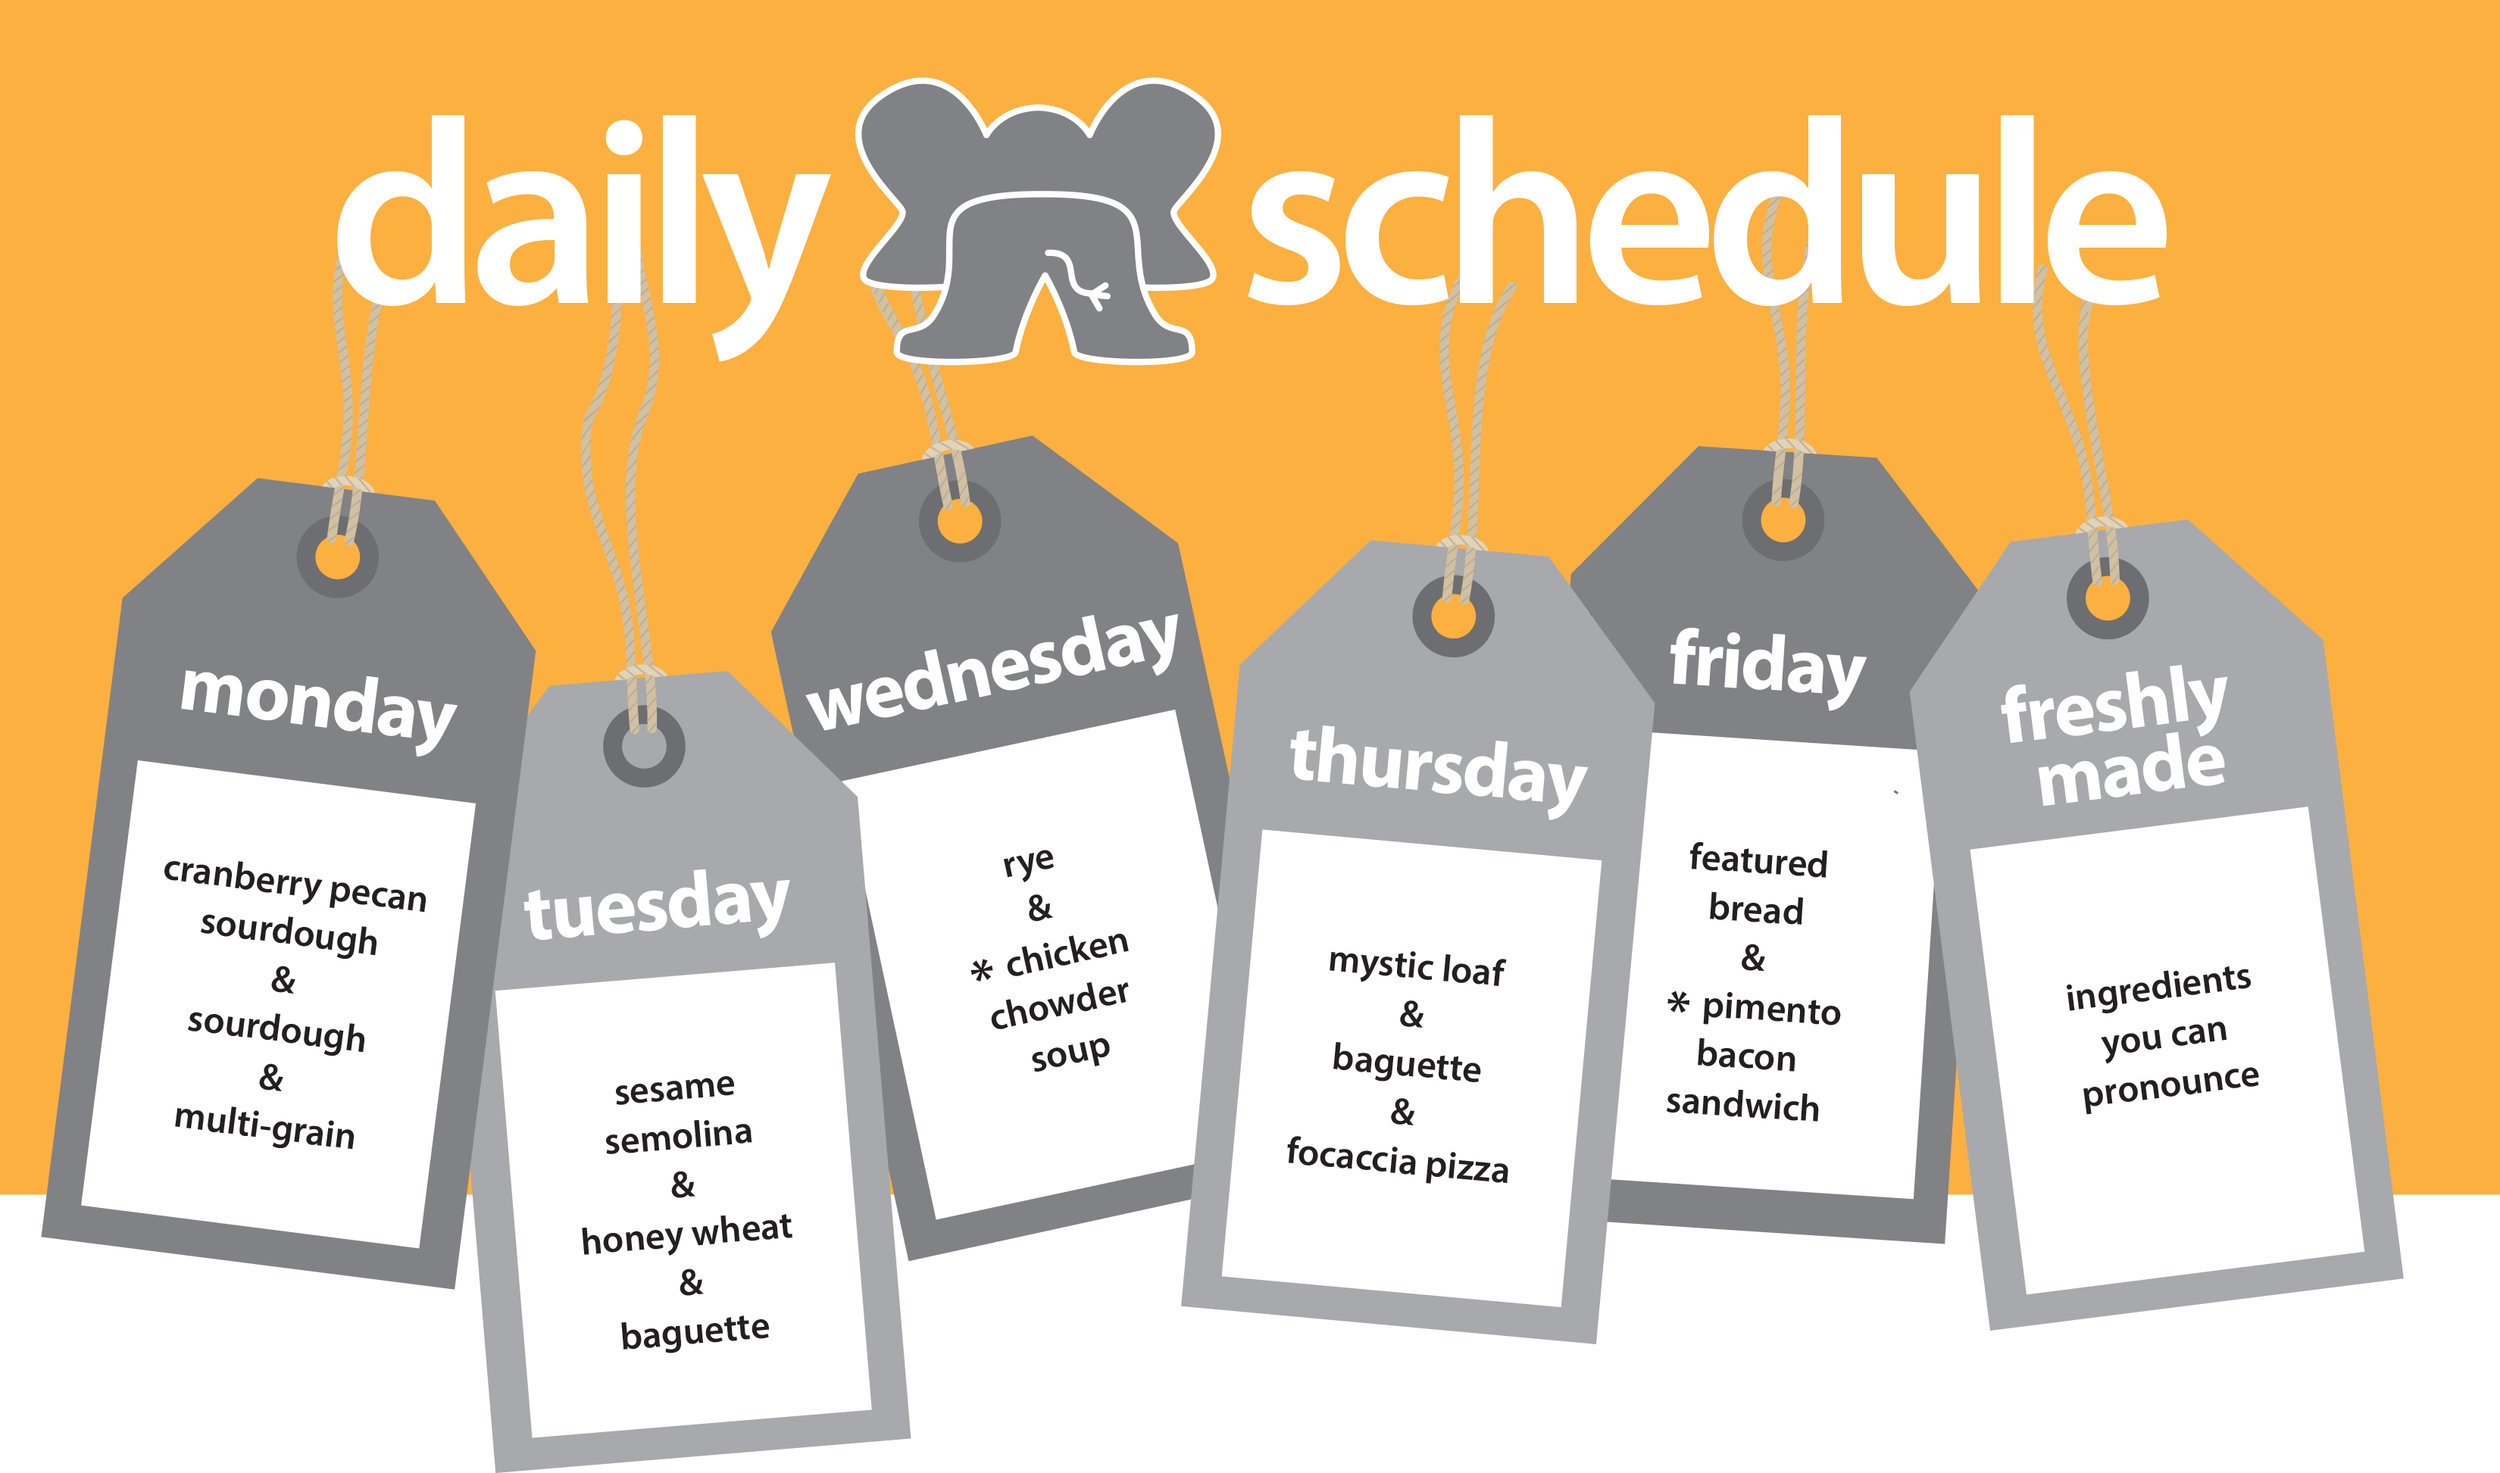 DailySchedule.jpg